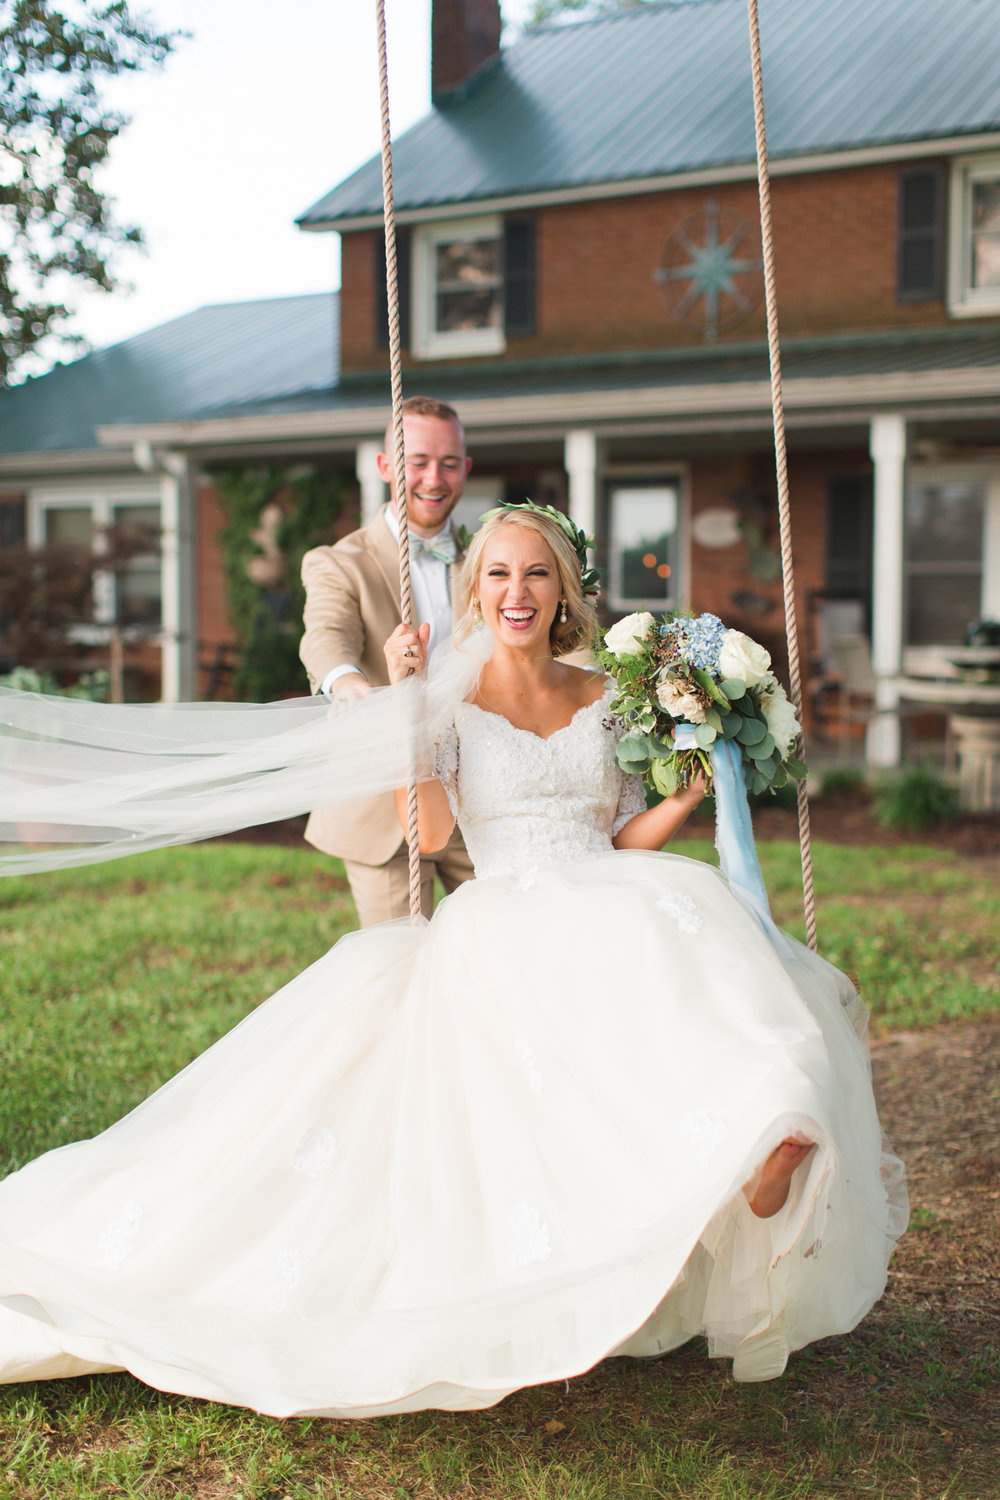 lauren+lucas rock hill south carolina wedding-7391.jpg